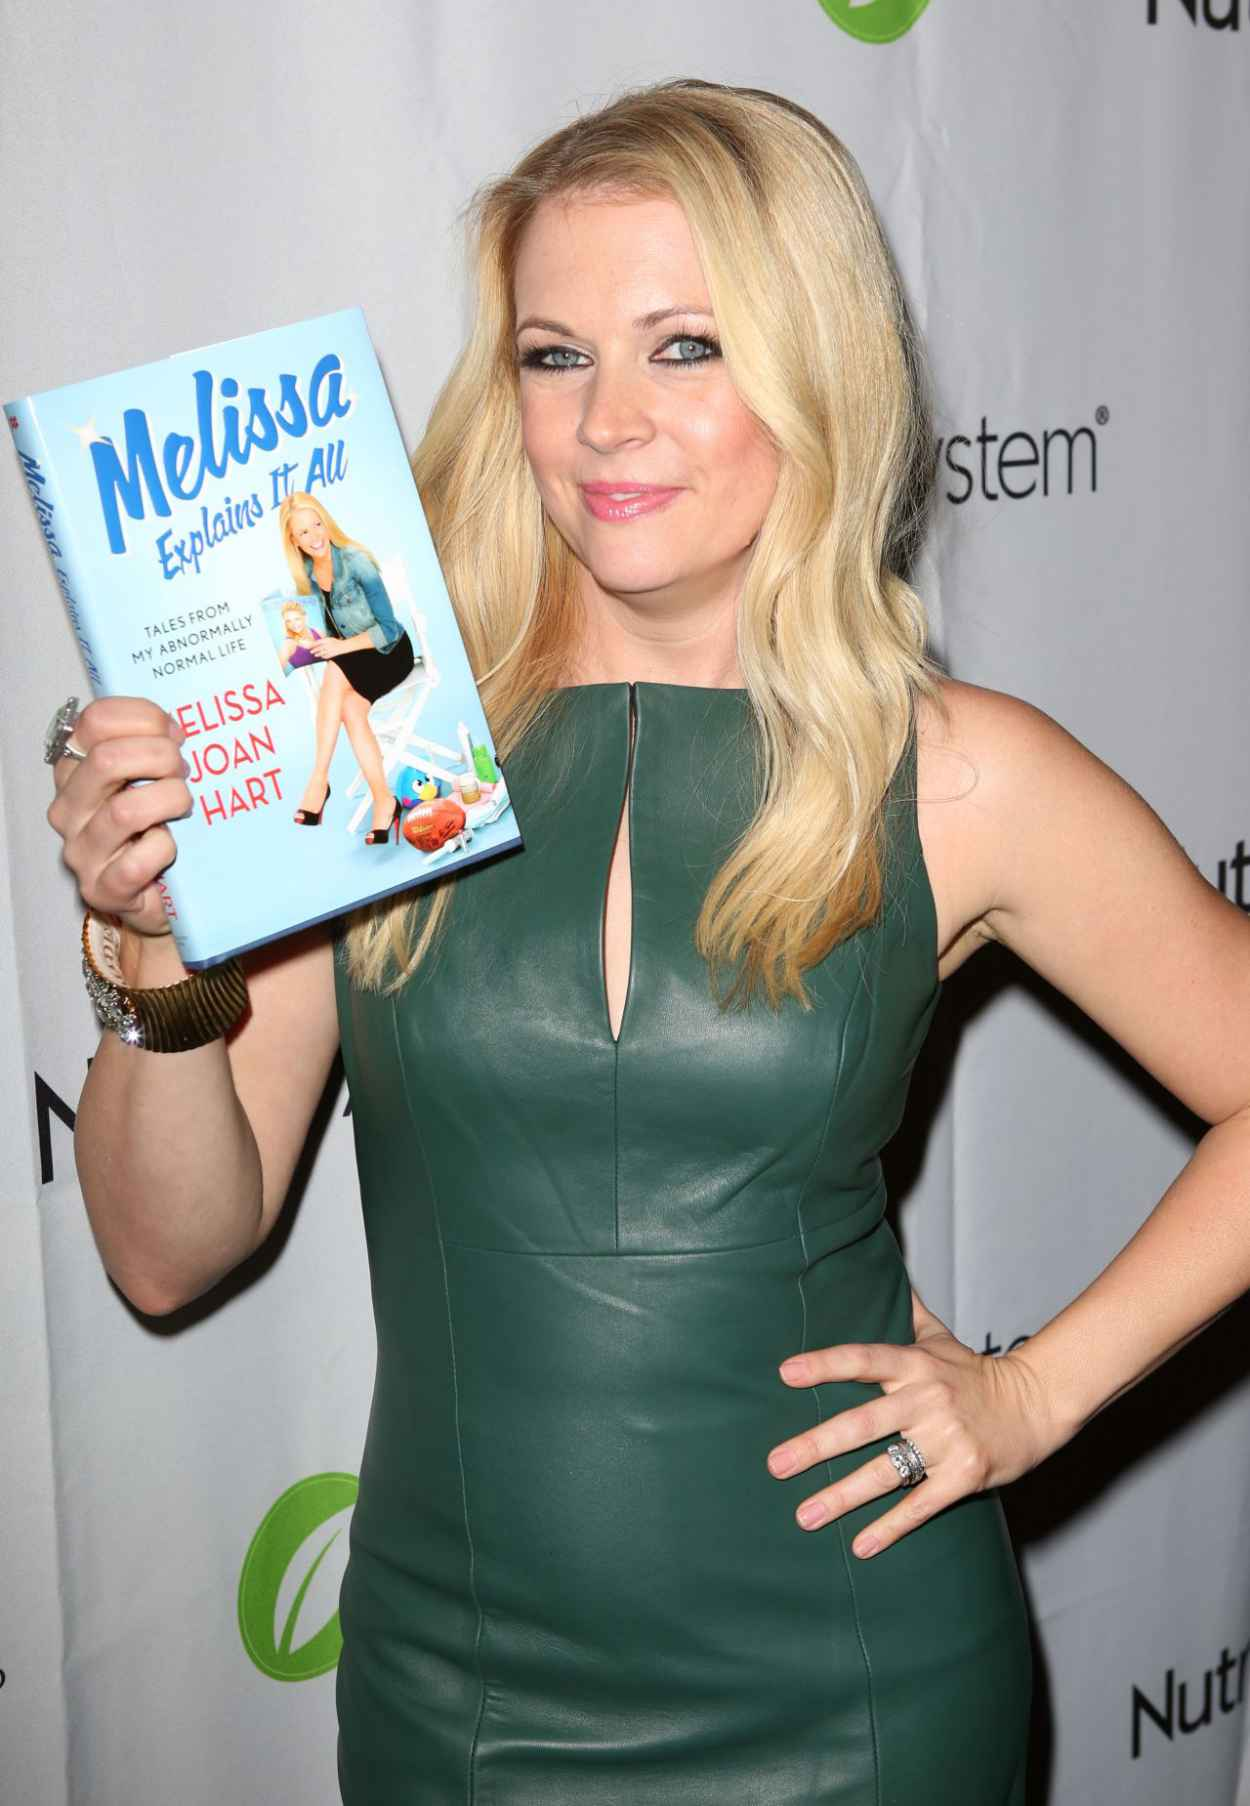 Melissa Joan Hart at Book launch Party in New York-1